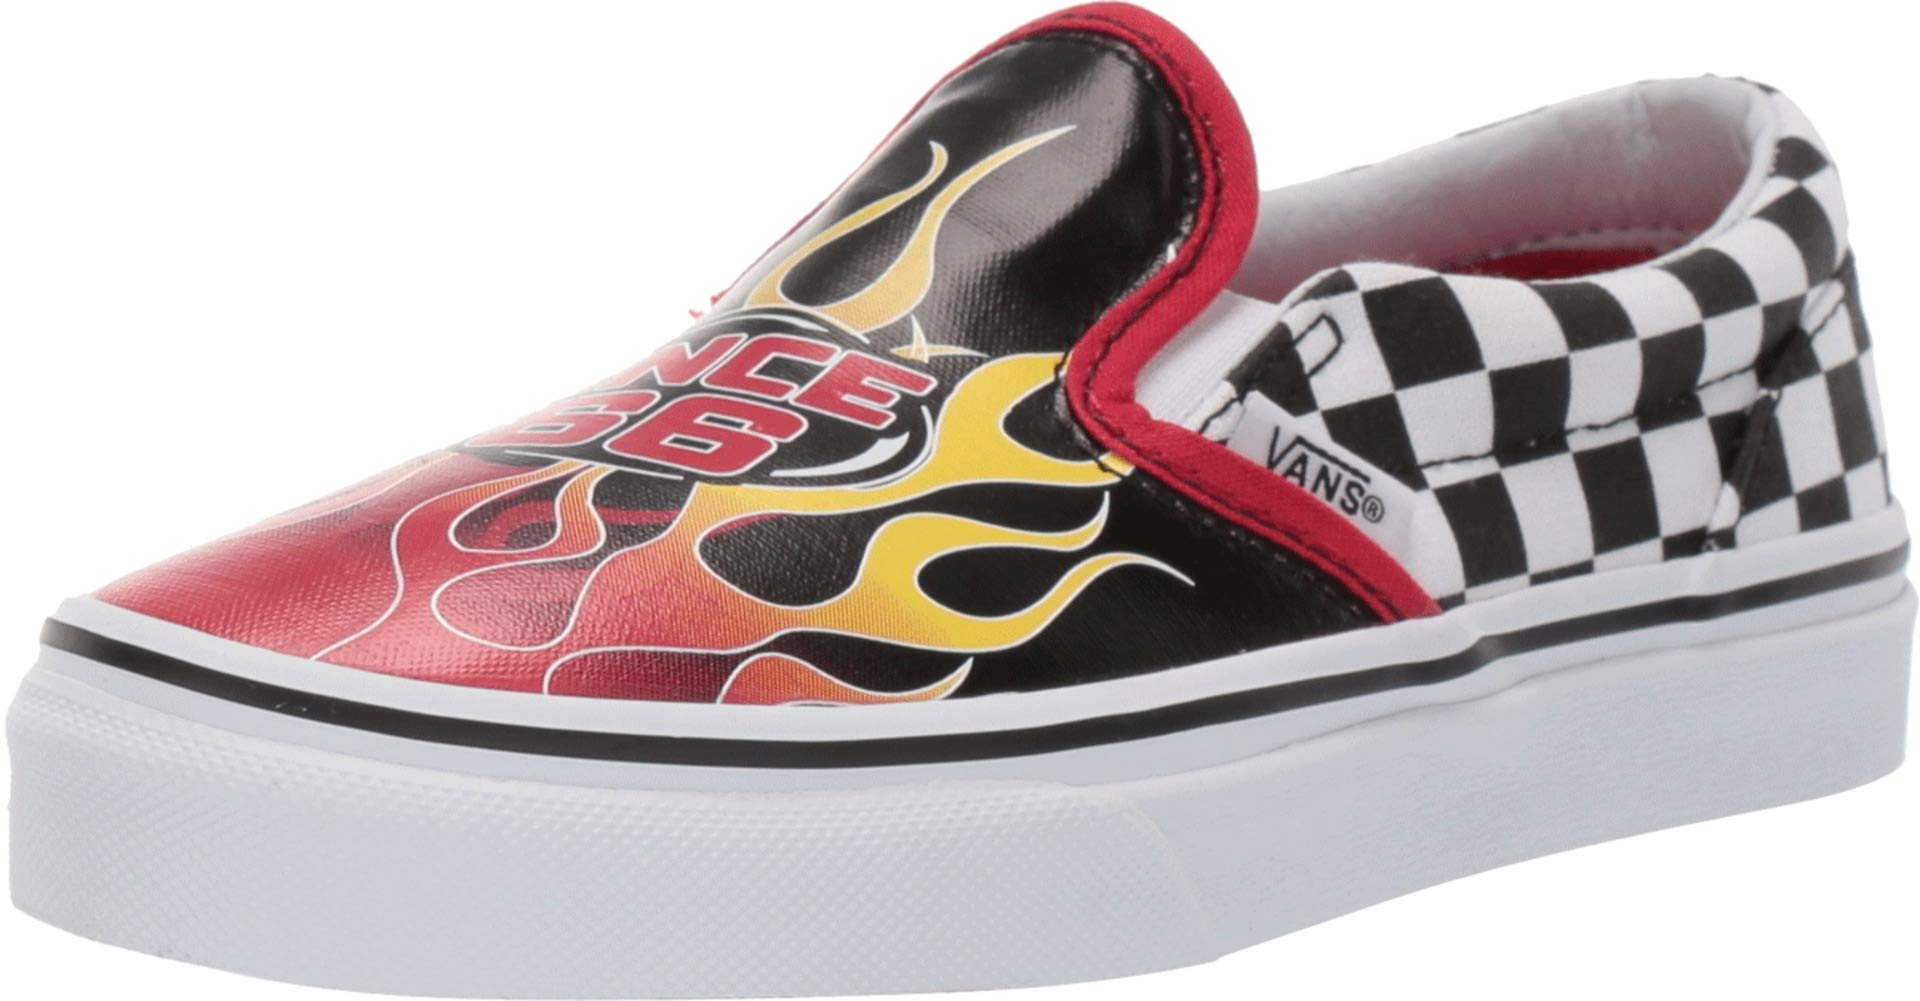 Vans Little/Big Kids Slip On Race Flame Boys Skate Shoe (3.5 M US Bid Kid, (Race Flame) Black/Racing)